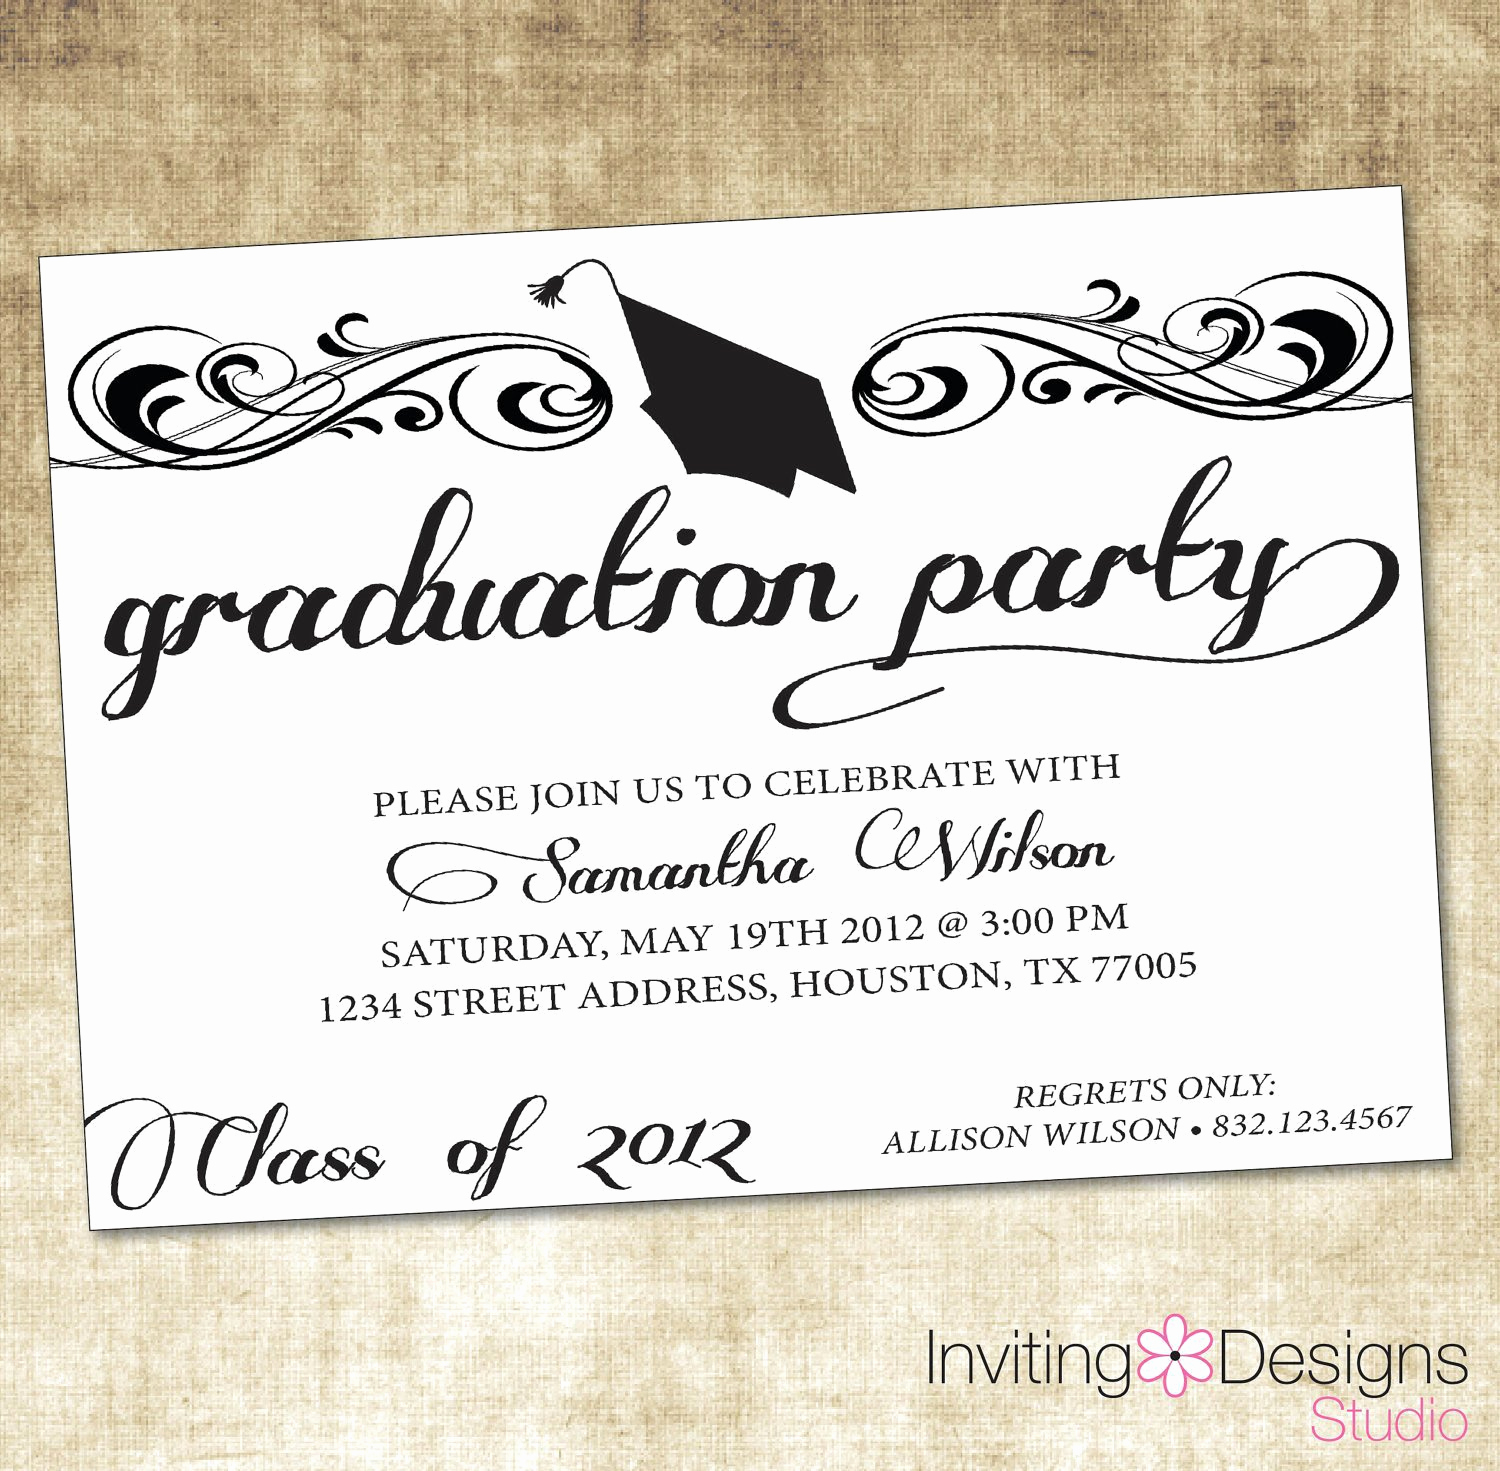 Graduation Ceremony Invitation Templates Free Inspirational Free Graduation Invitation Templates Free Graduation